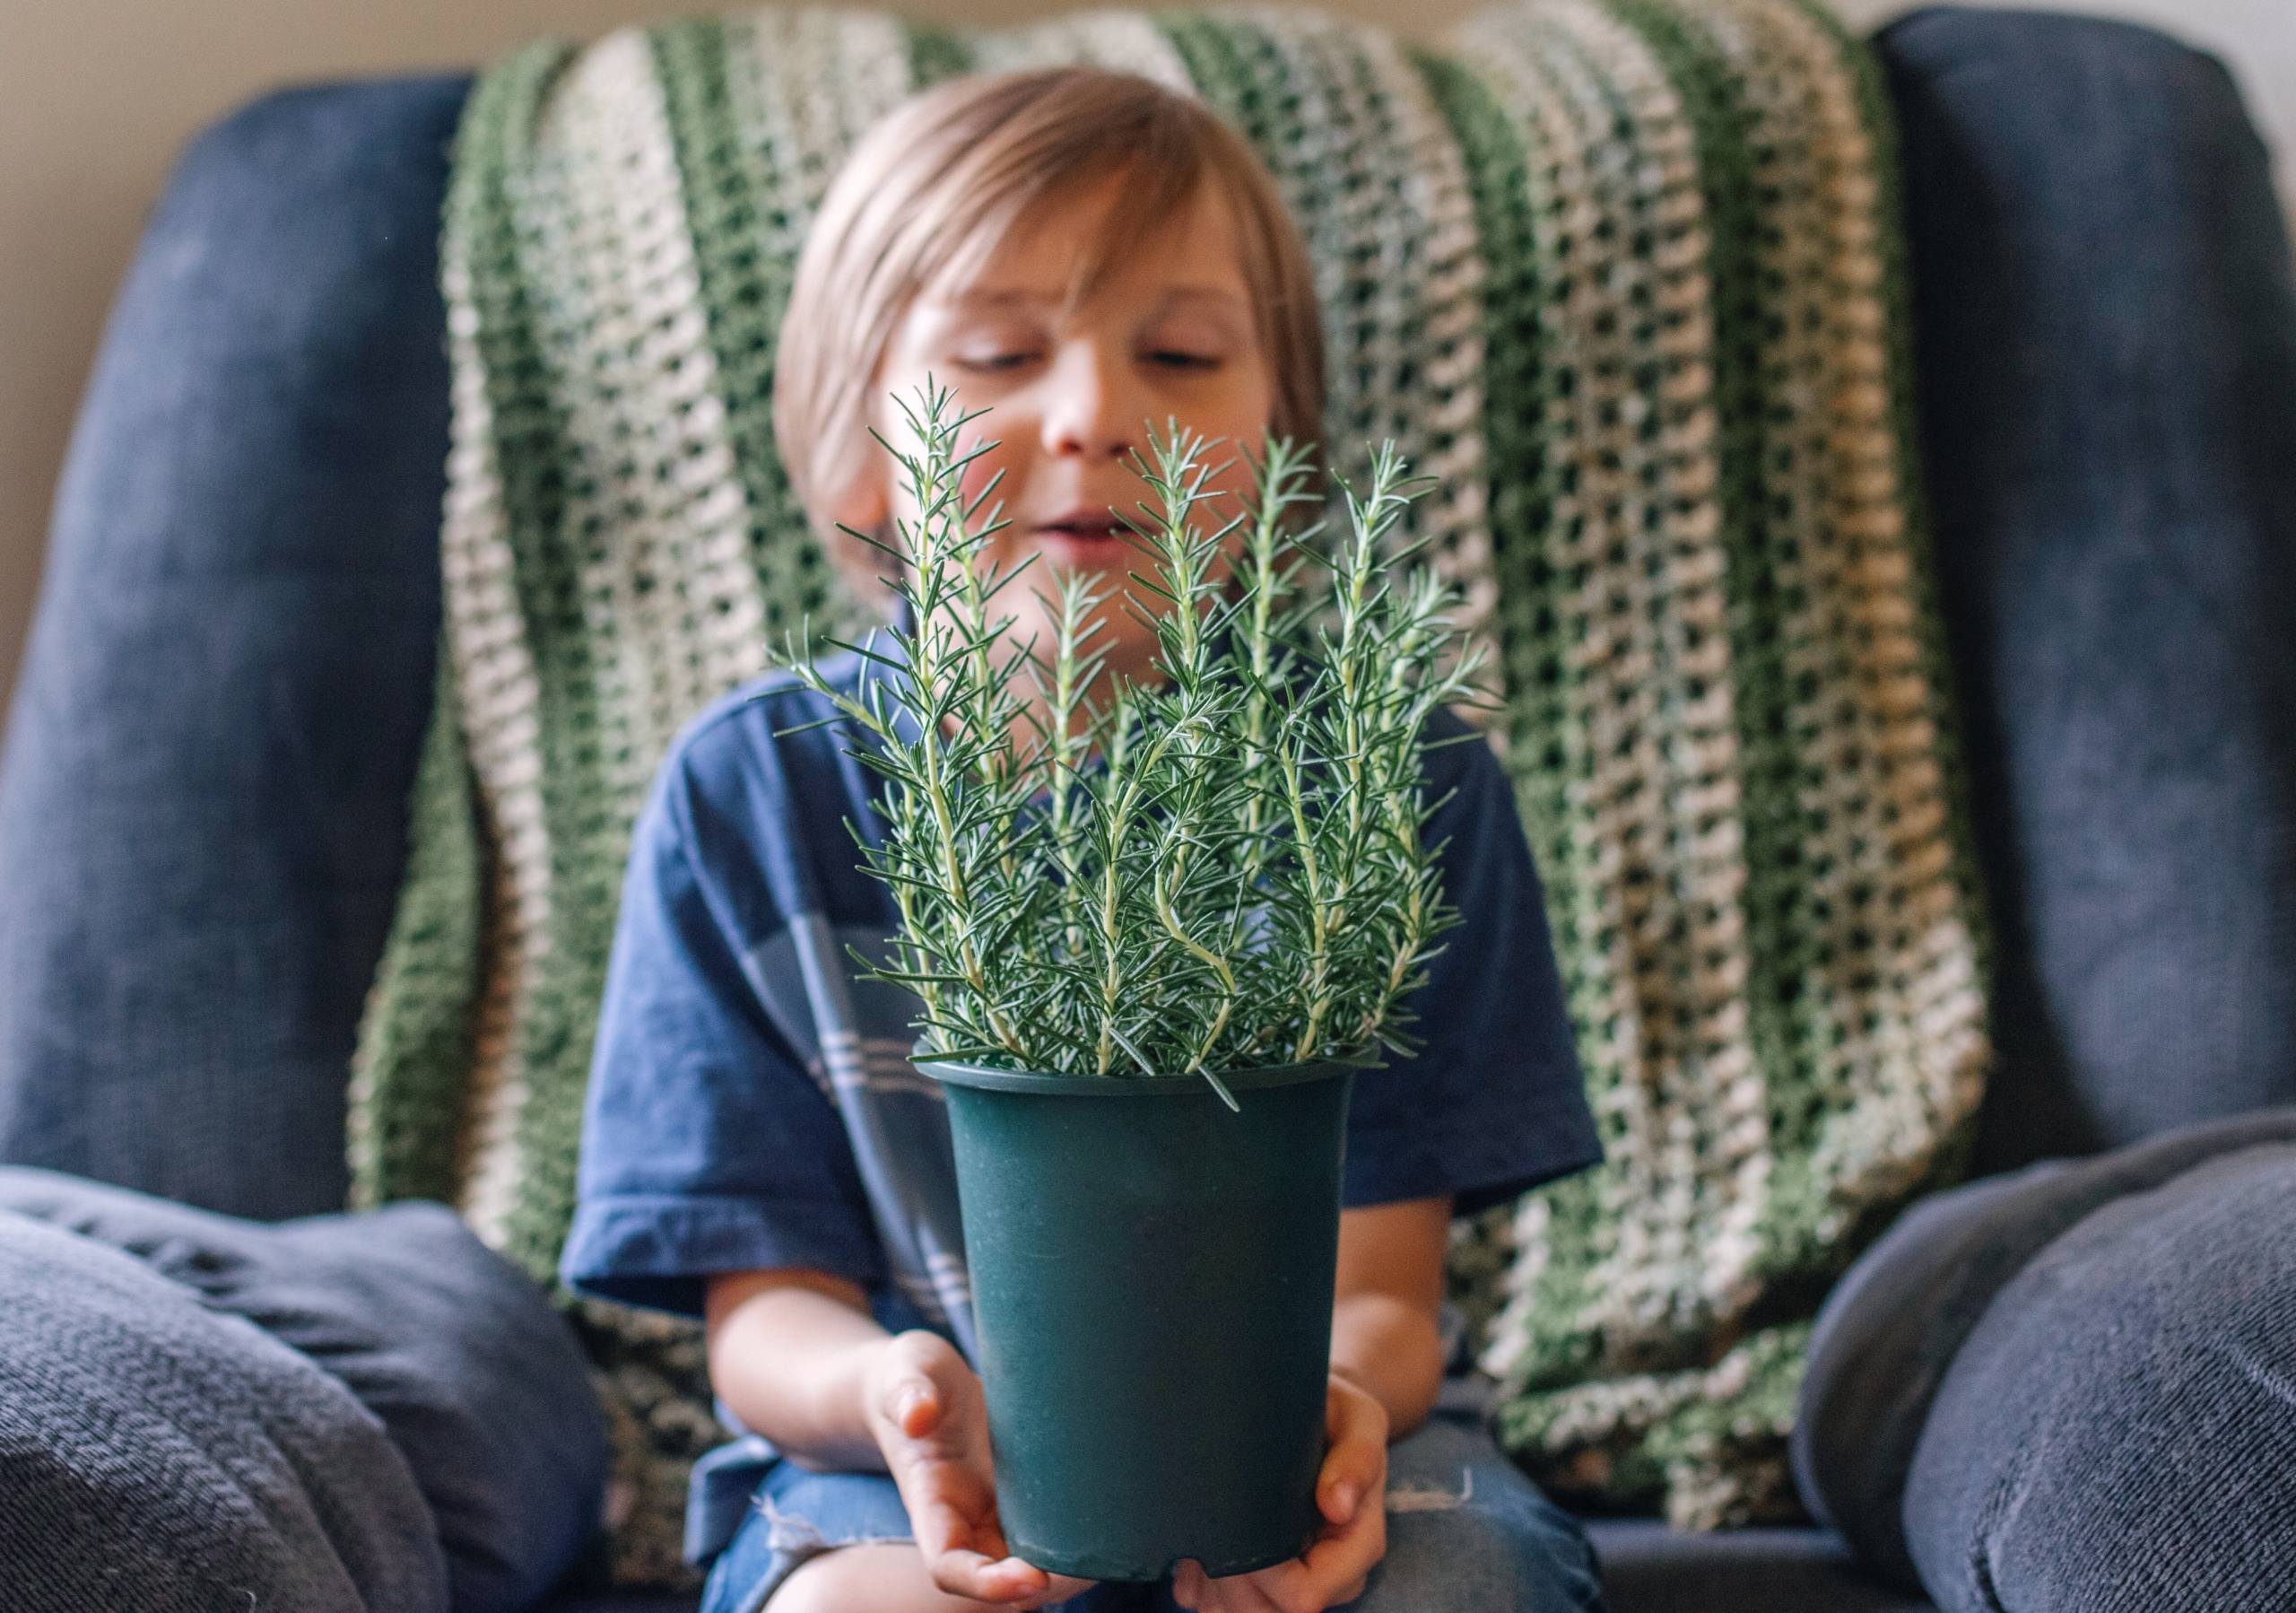 small child holding a plant that he found for his indoor scavenger hunt